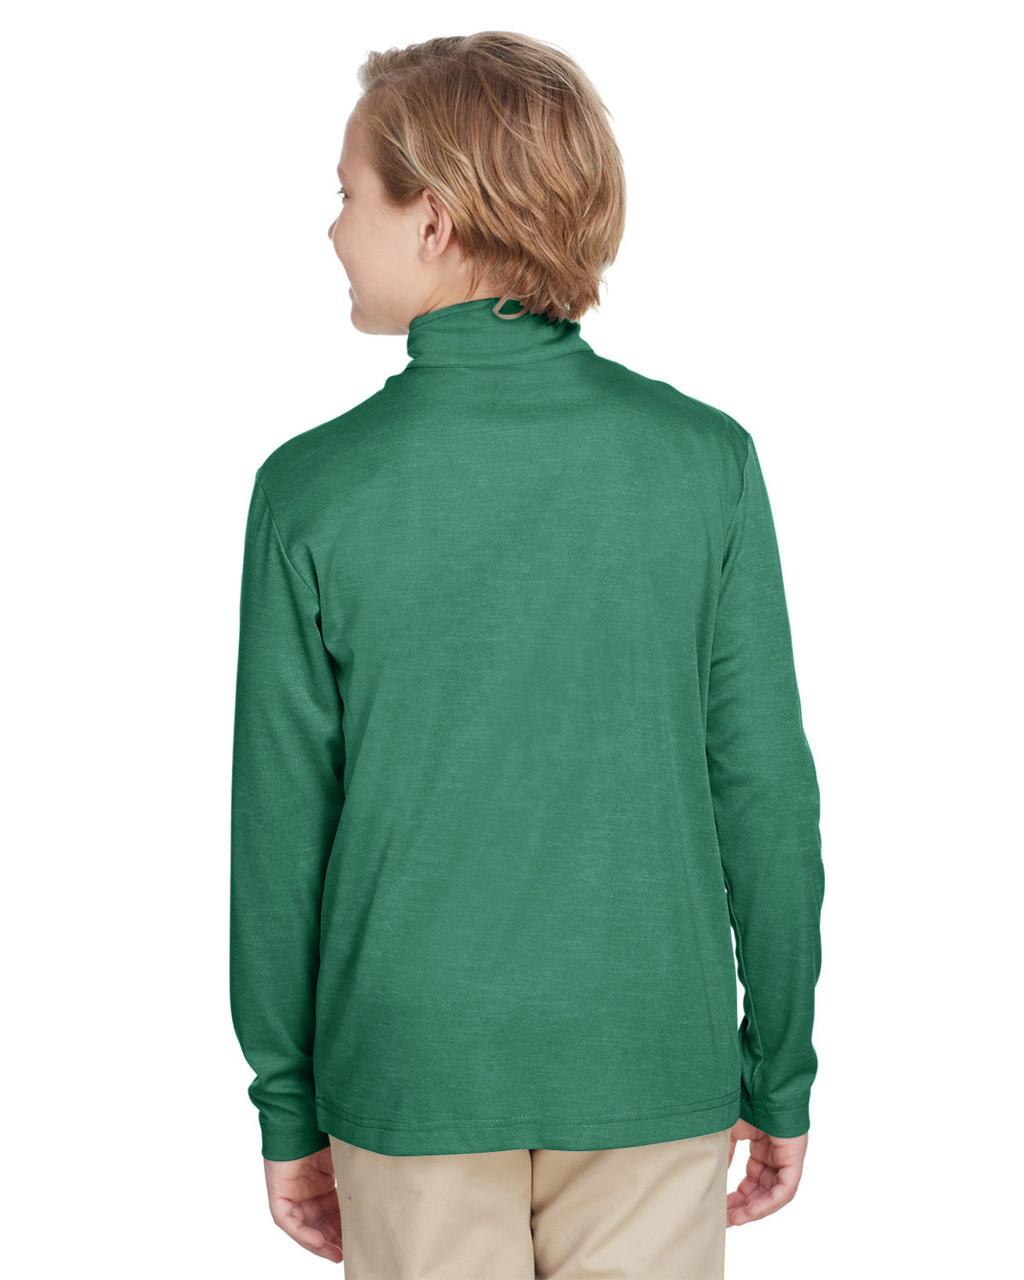 Sport Forest Heather, Back - TT31HY Team 365 Youth Zone Sonic Heather Performance Quarter-Zip Athletic Shirt | BlankClothing.ca